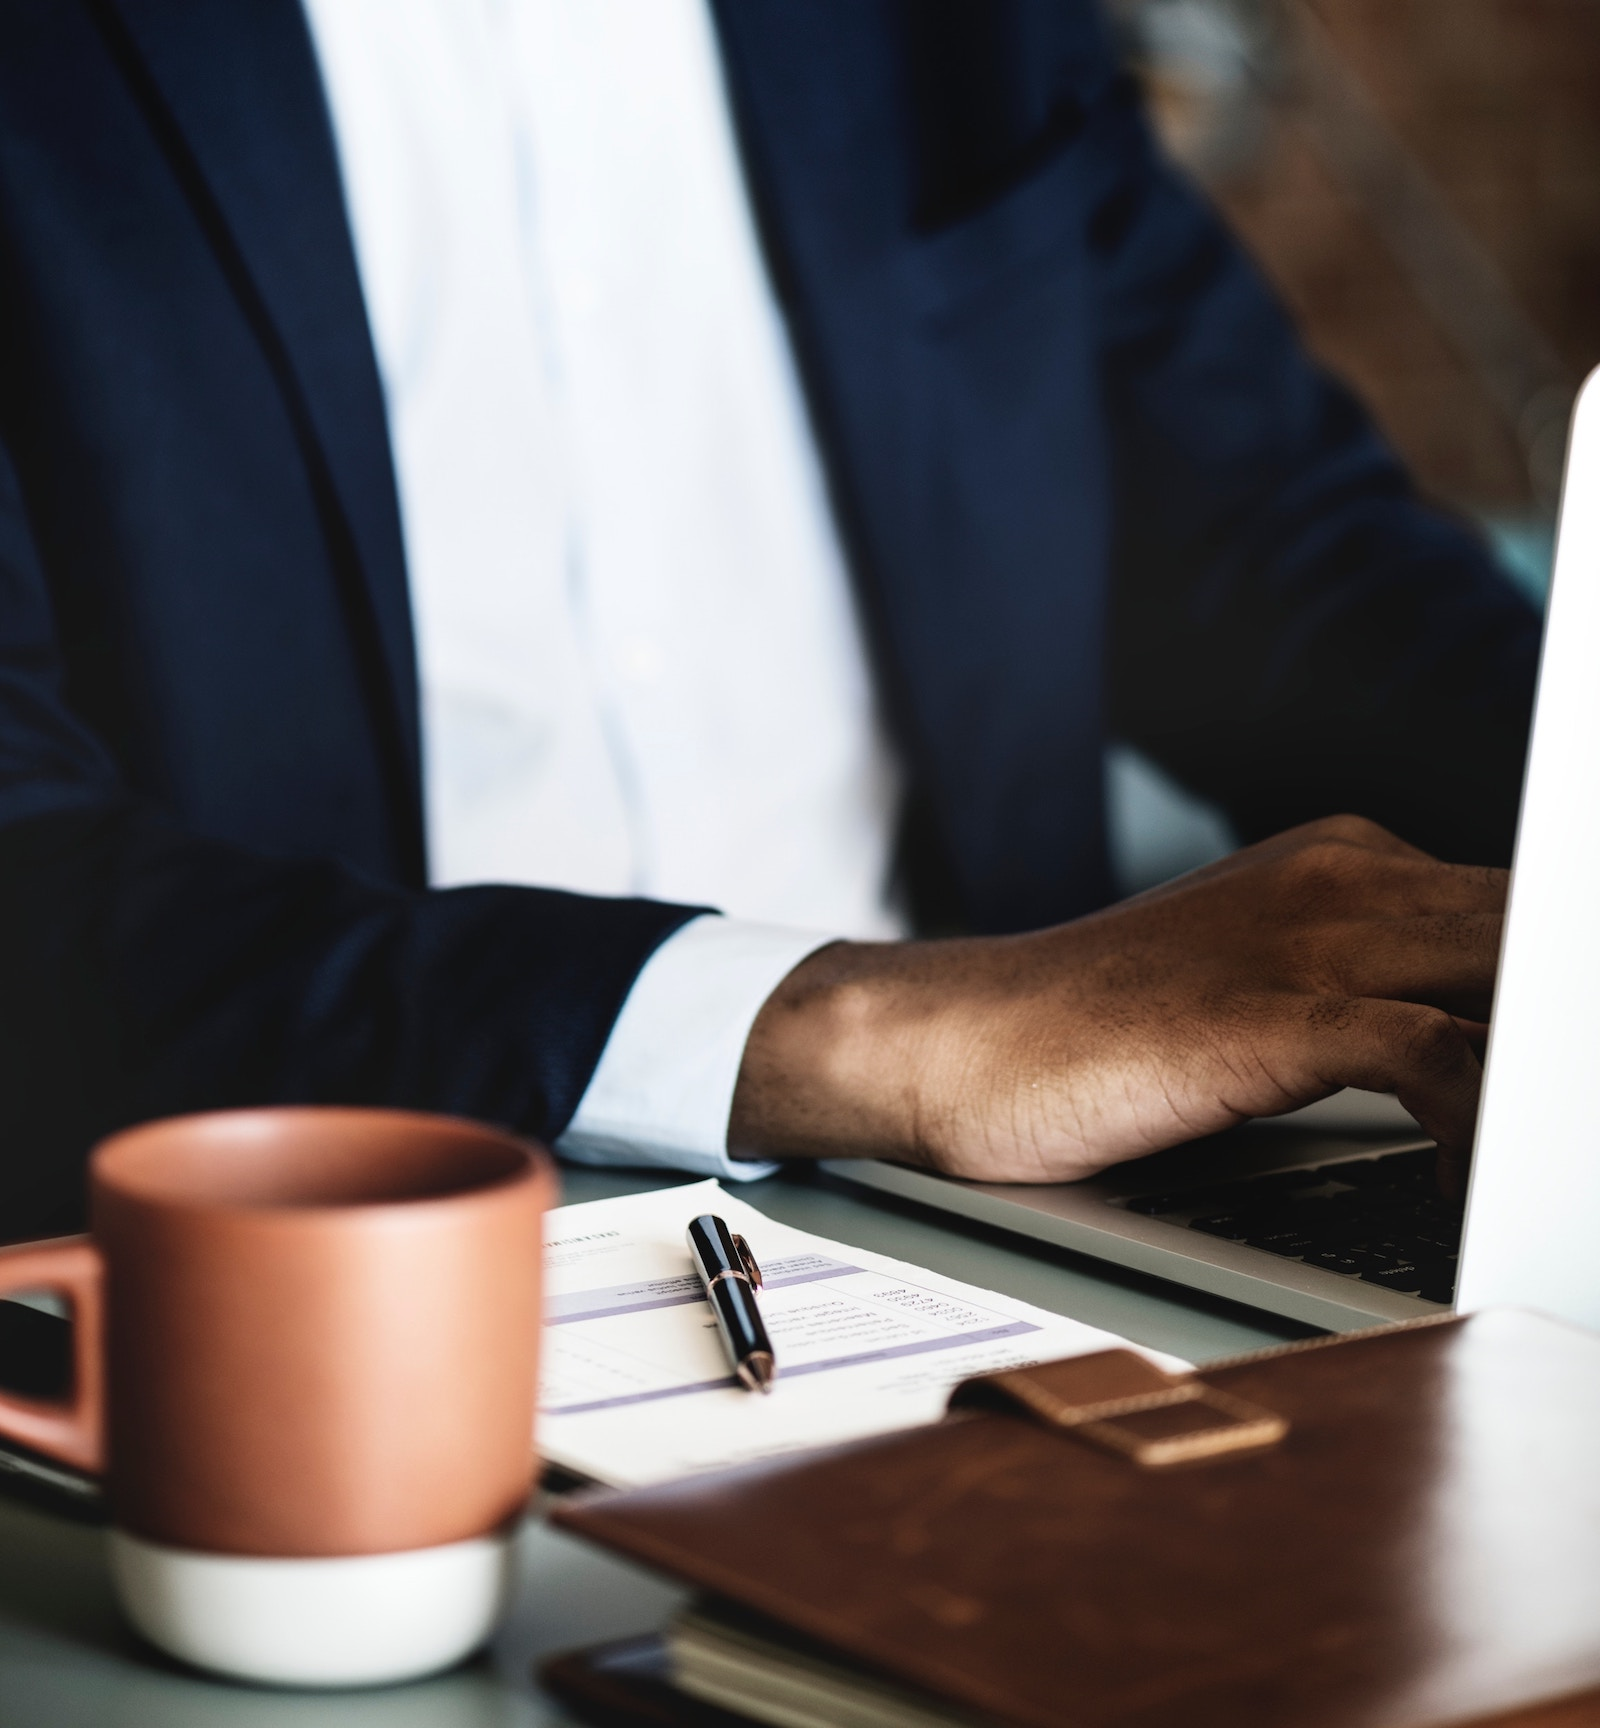 6 ways to evaluate job candidates beyond the resume